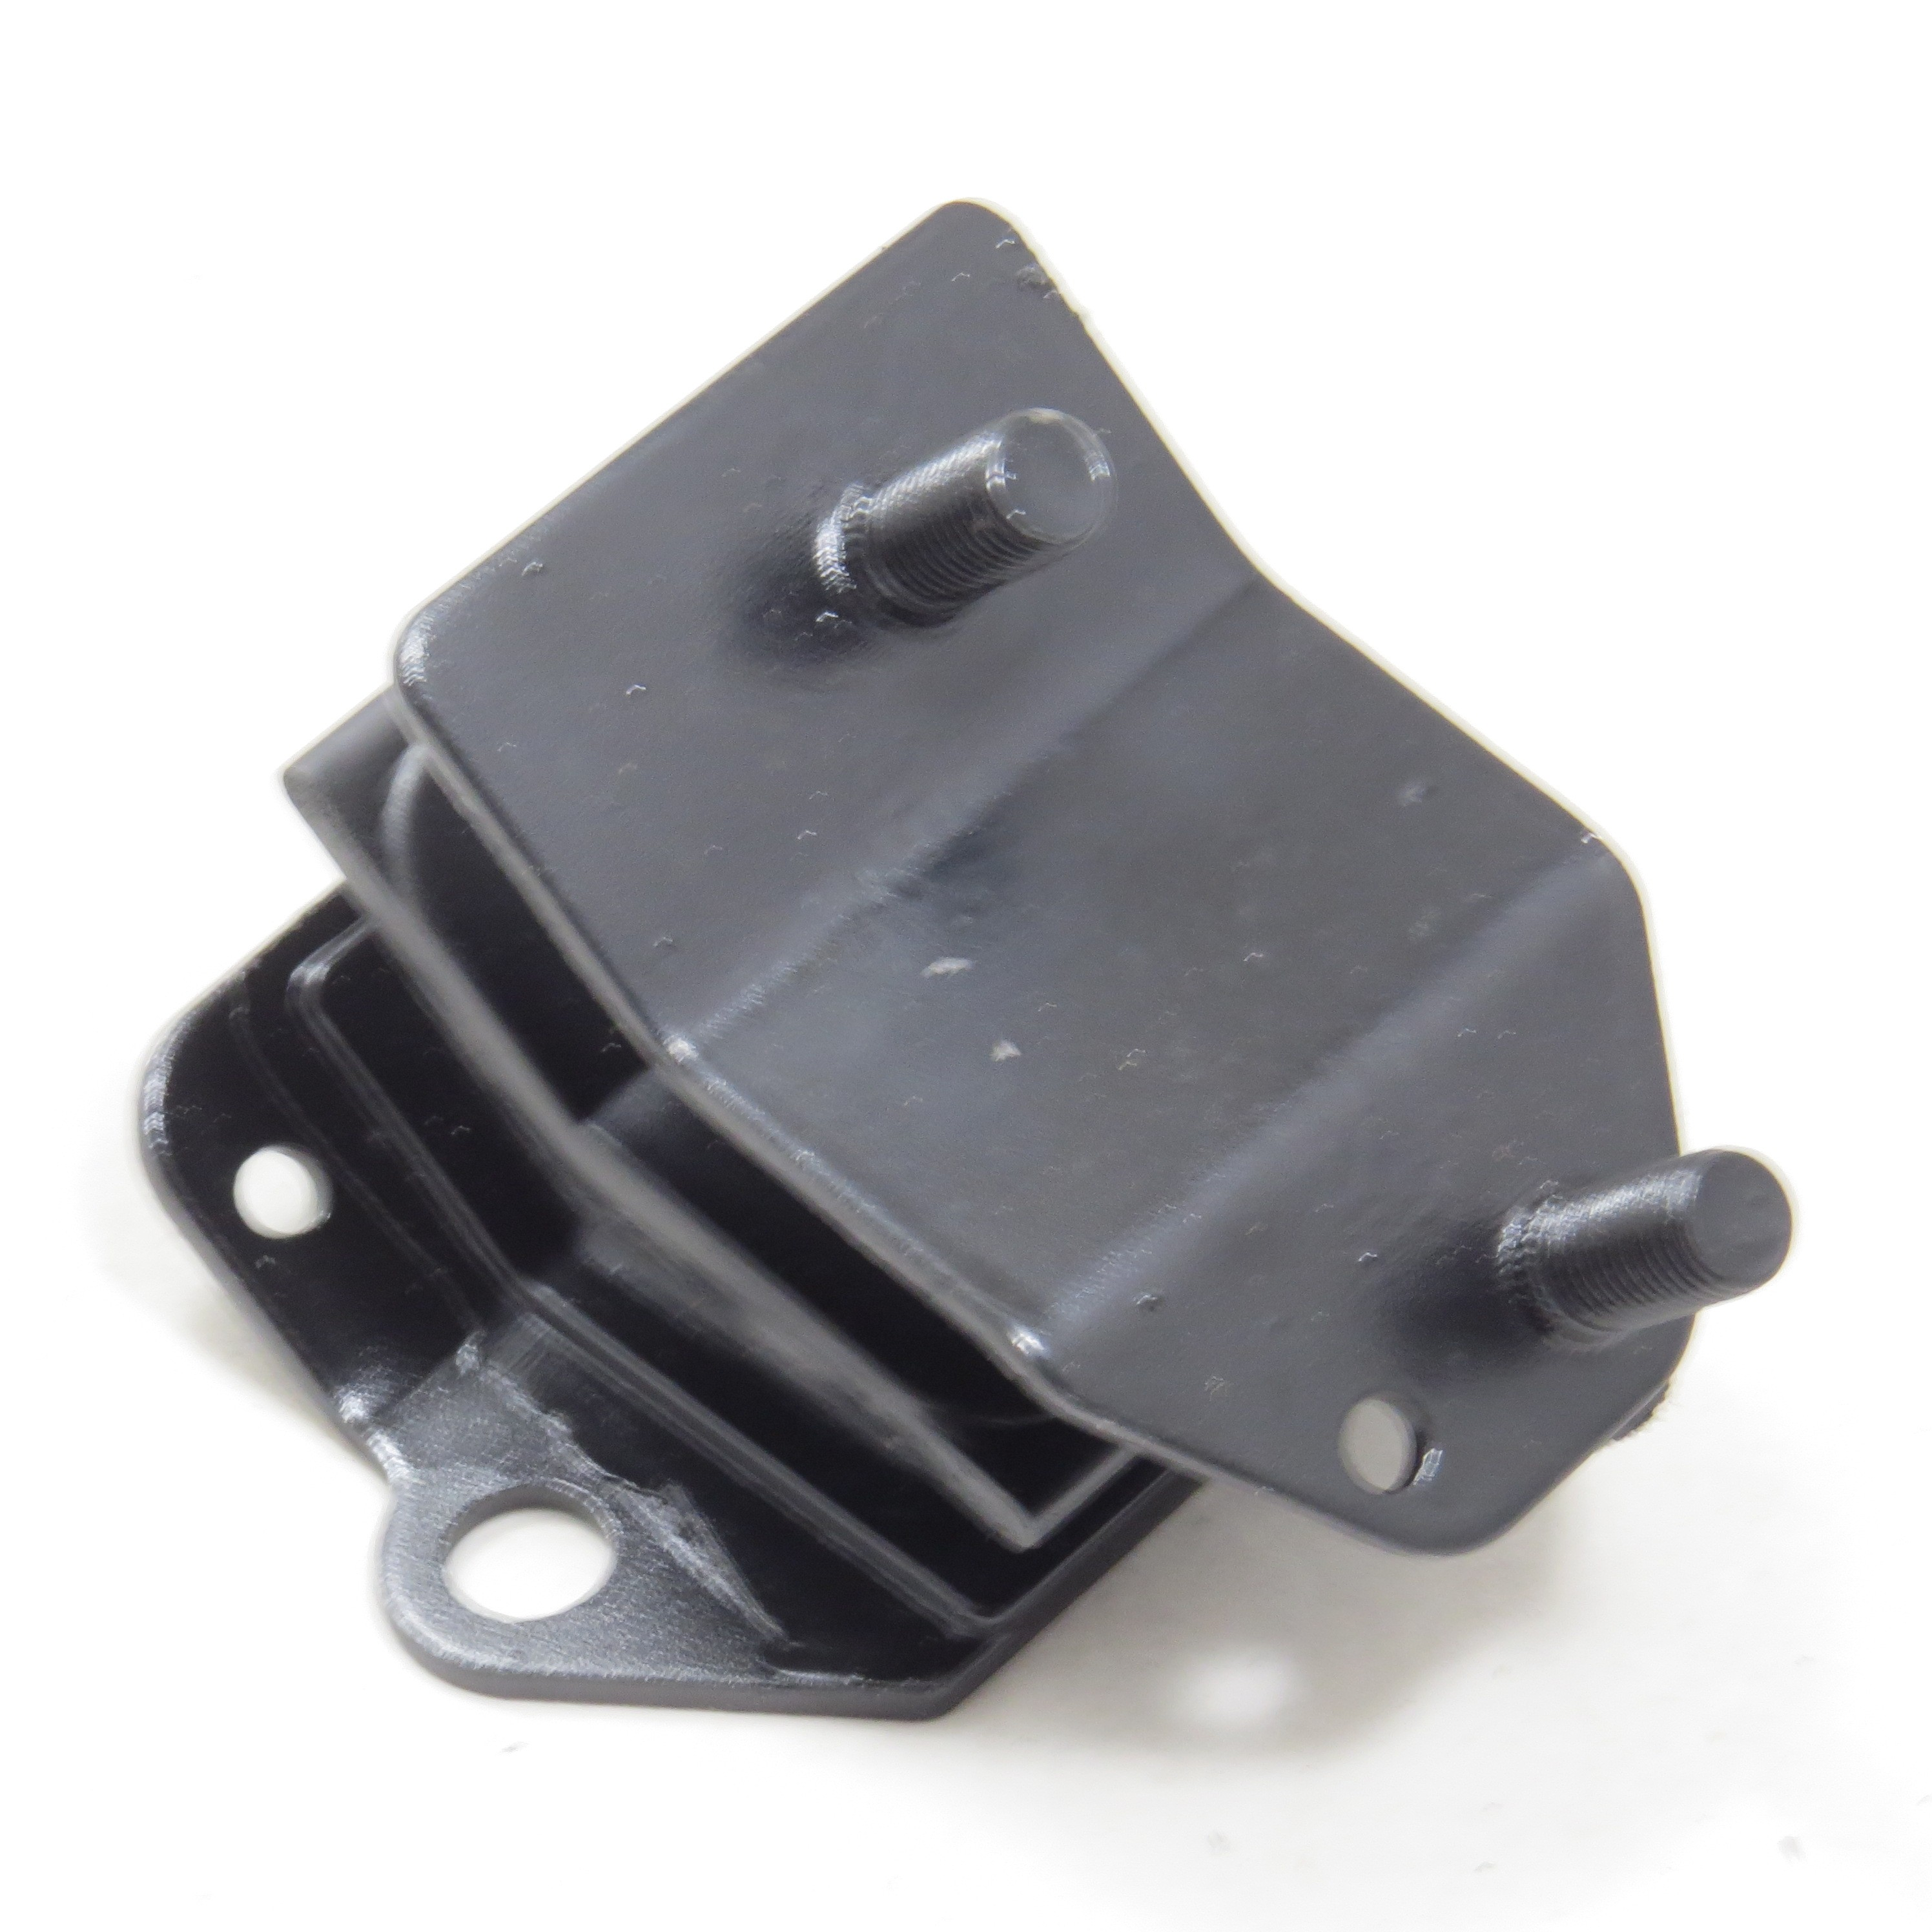 Engine Mount Set For 04-06 Acura TL 3.2L Automatic